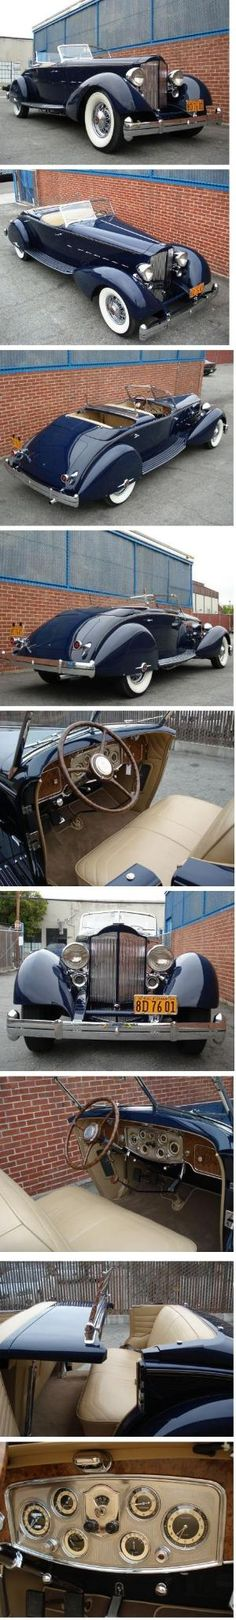 1934 Packard Twelve Sport Phaeton by DeeDeeBean